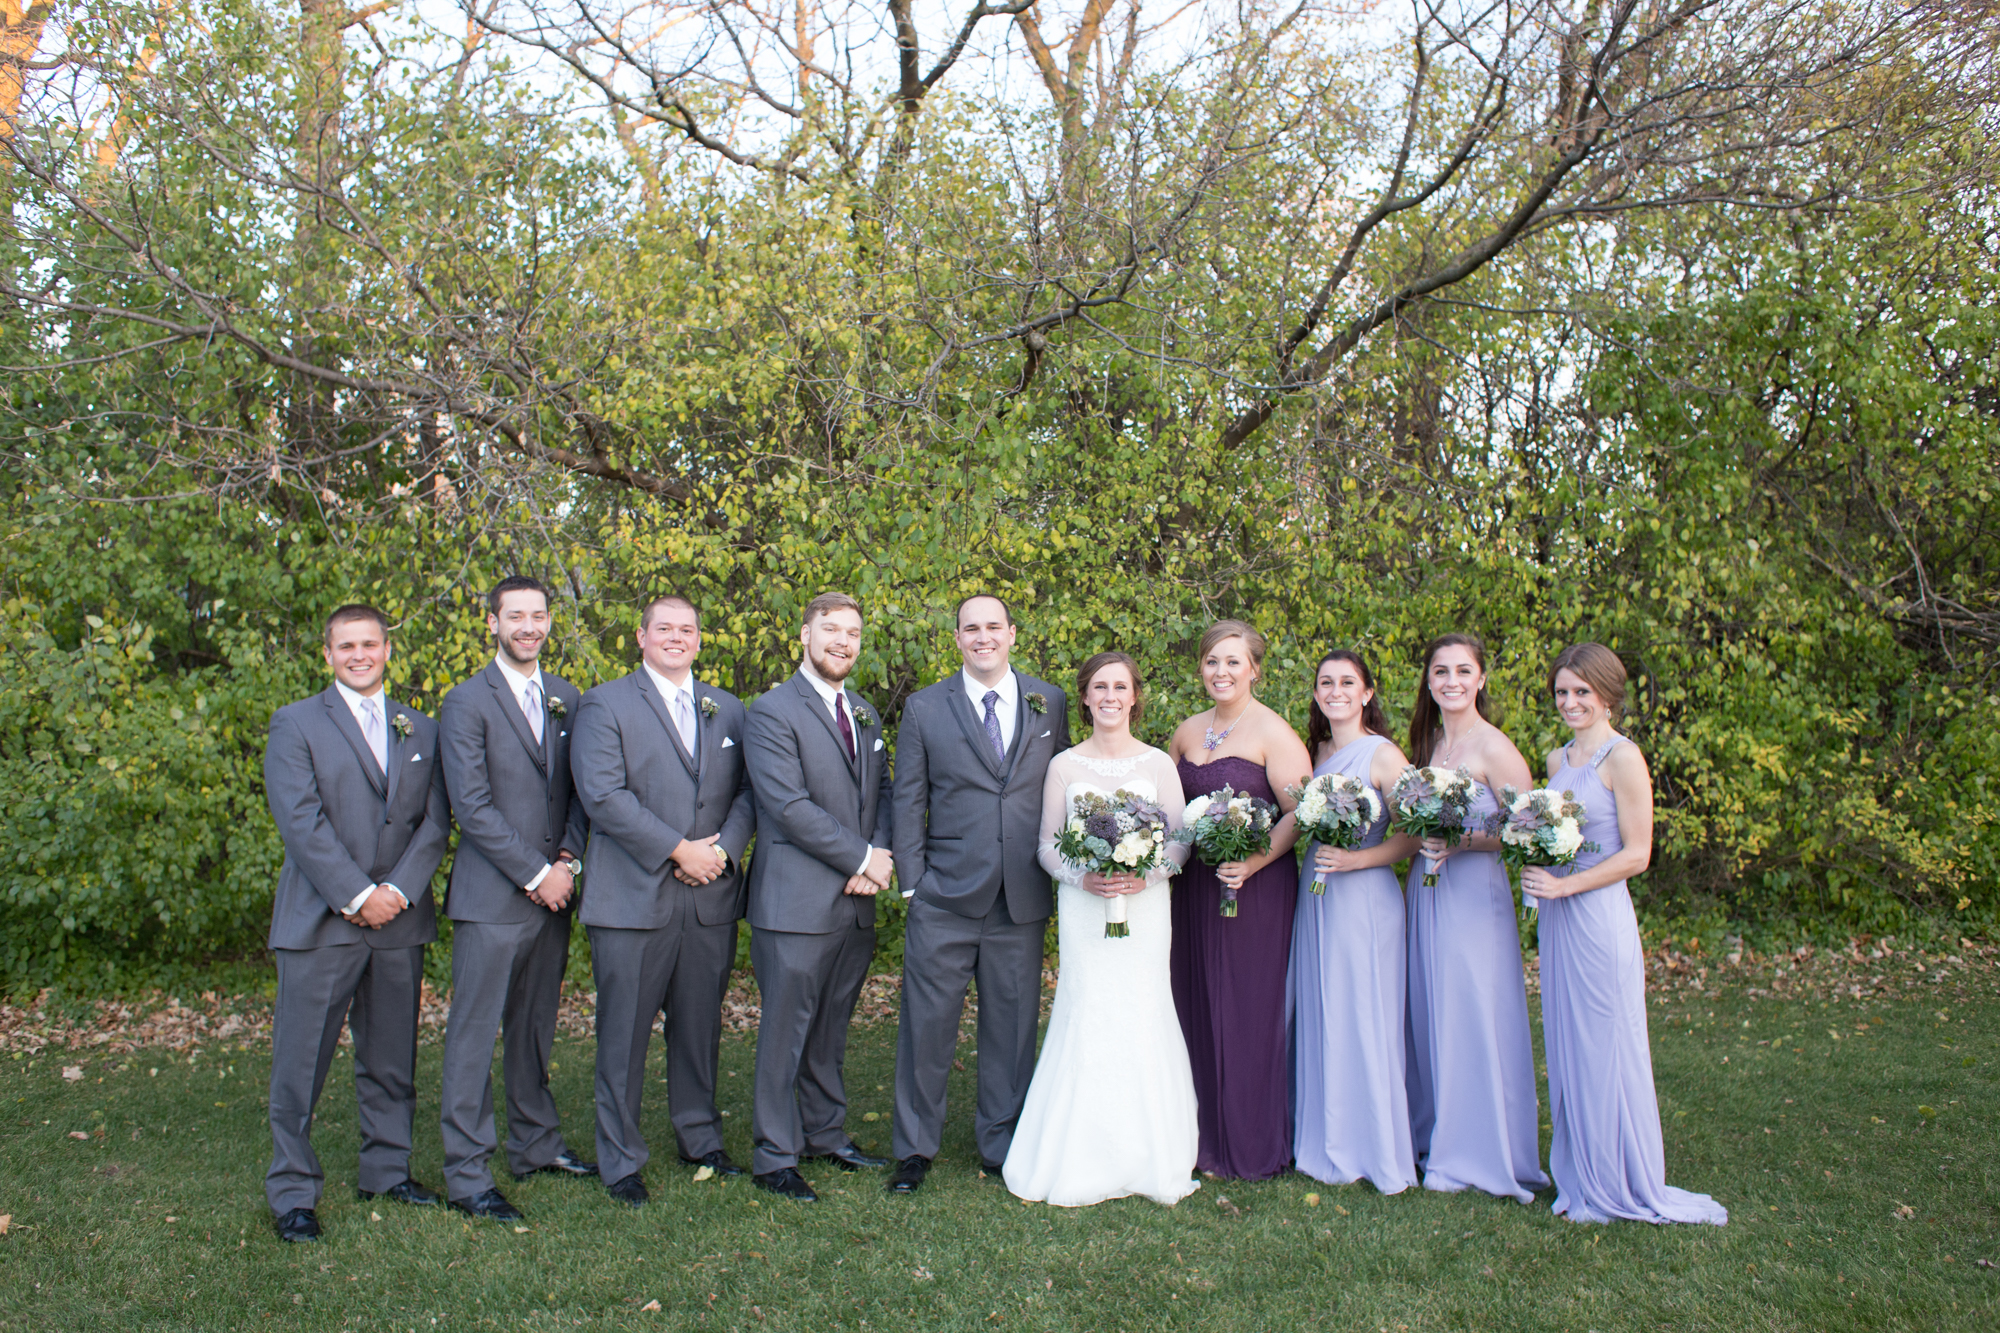 Appleton Wisconsin Wedding Photographer Fox Banquets and Catering - Whit Meza Photography